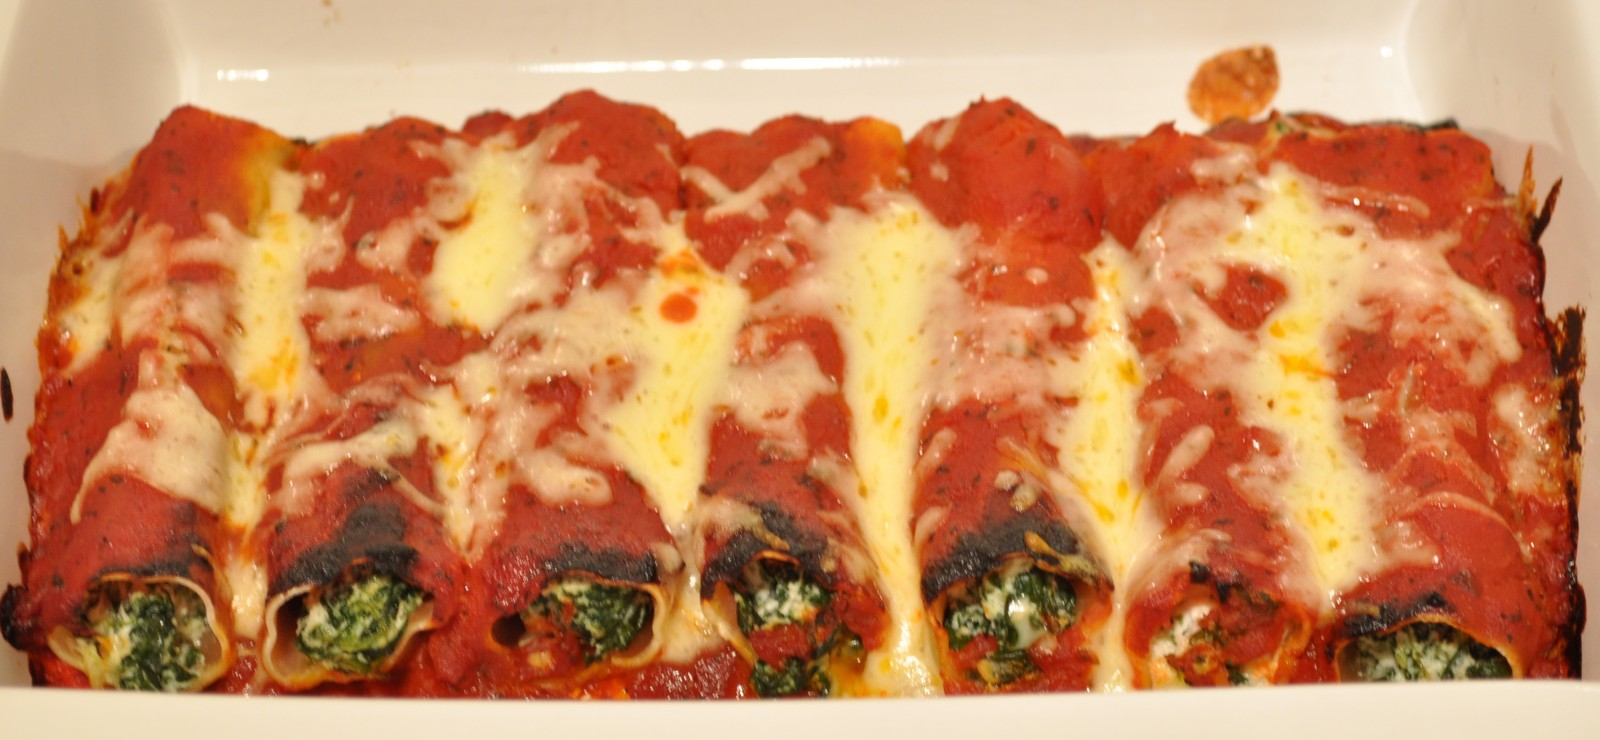 mascarpone sauces cannelloni with swiss chard and fresh goat cheese ...